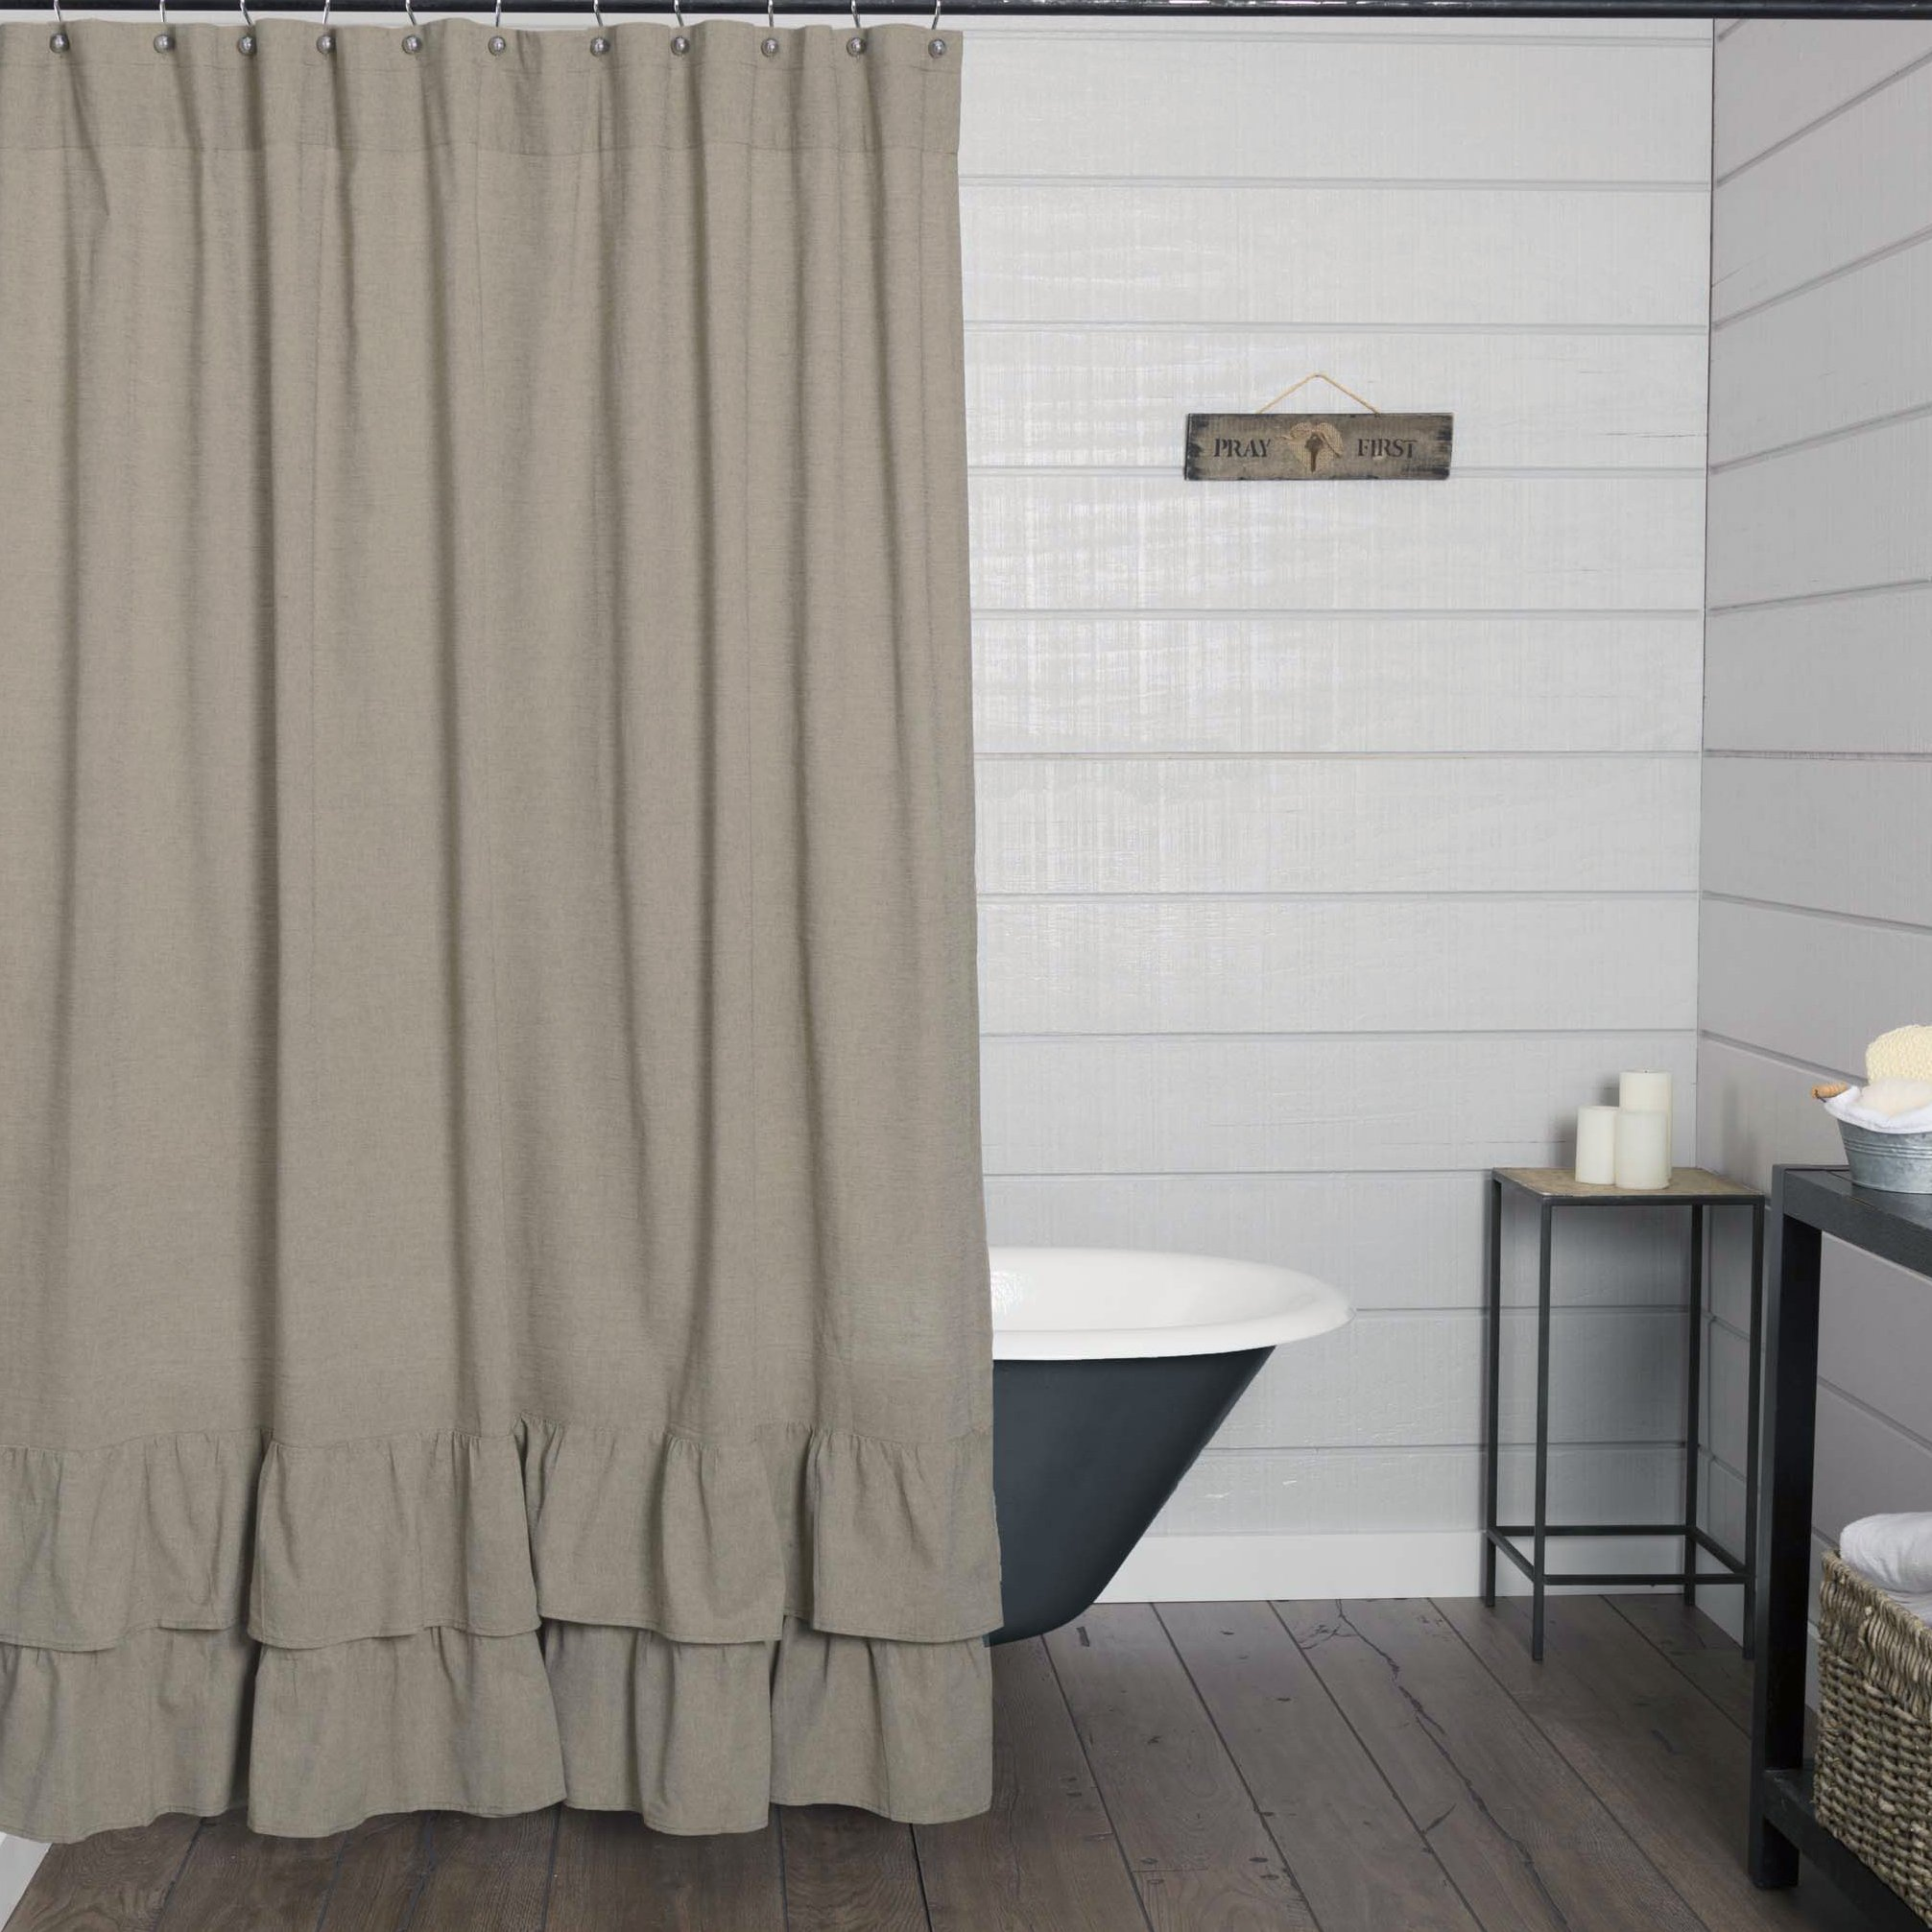 Piper Classics Ruffled Chambray Taupe-Grey Shower Curtain, 72x72, Vintage Farmhouse Decor